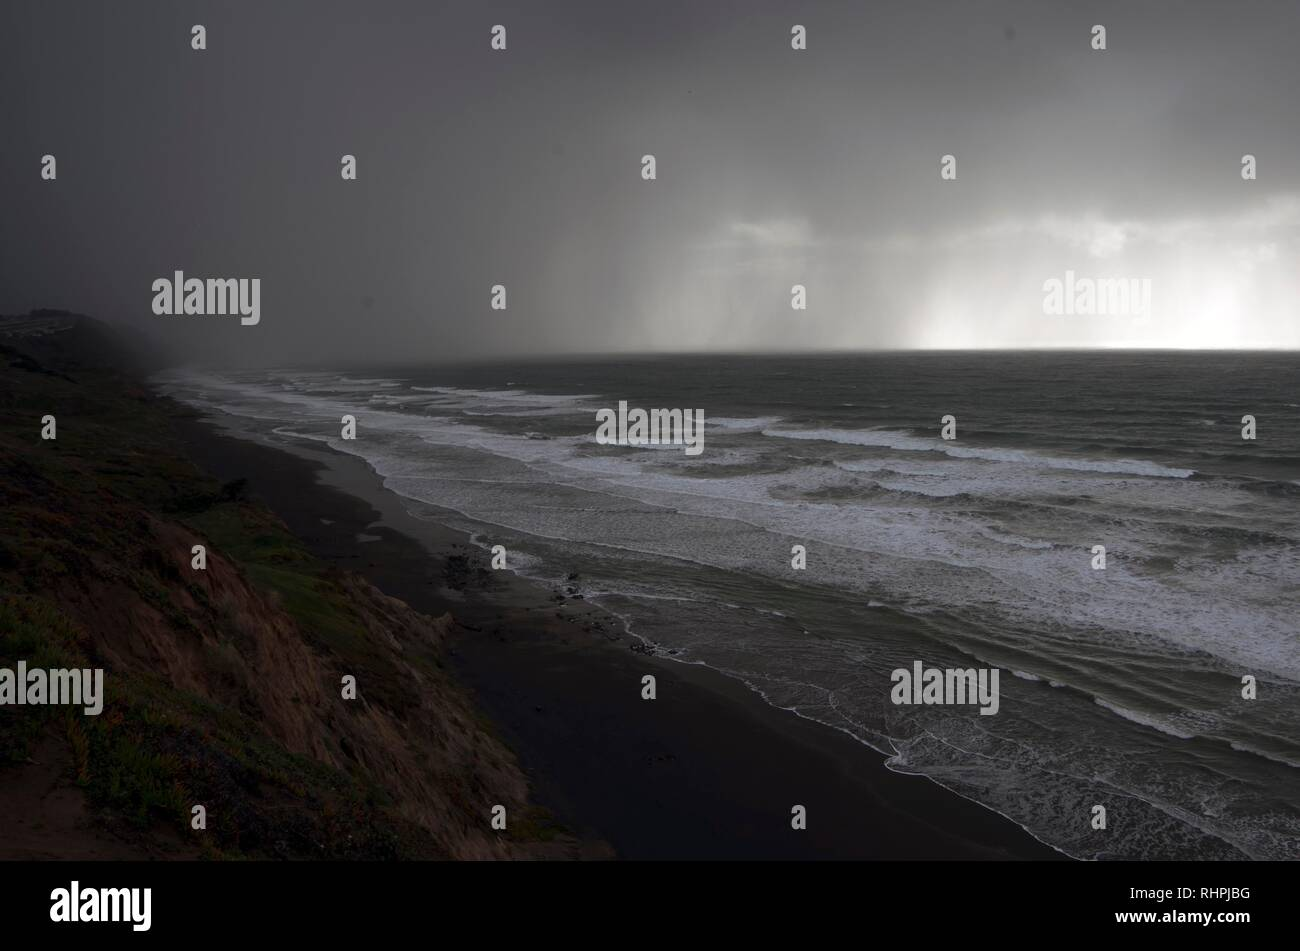 A heavy rain shower approaches Fort Funston near San Francisco. - Stock Image